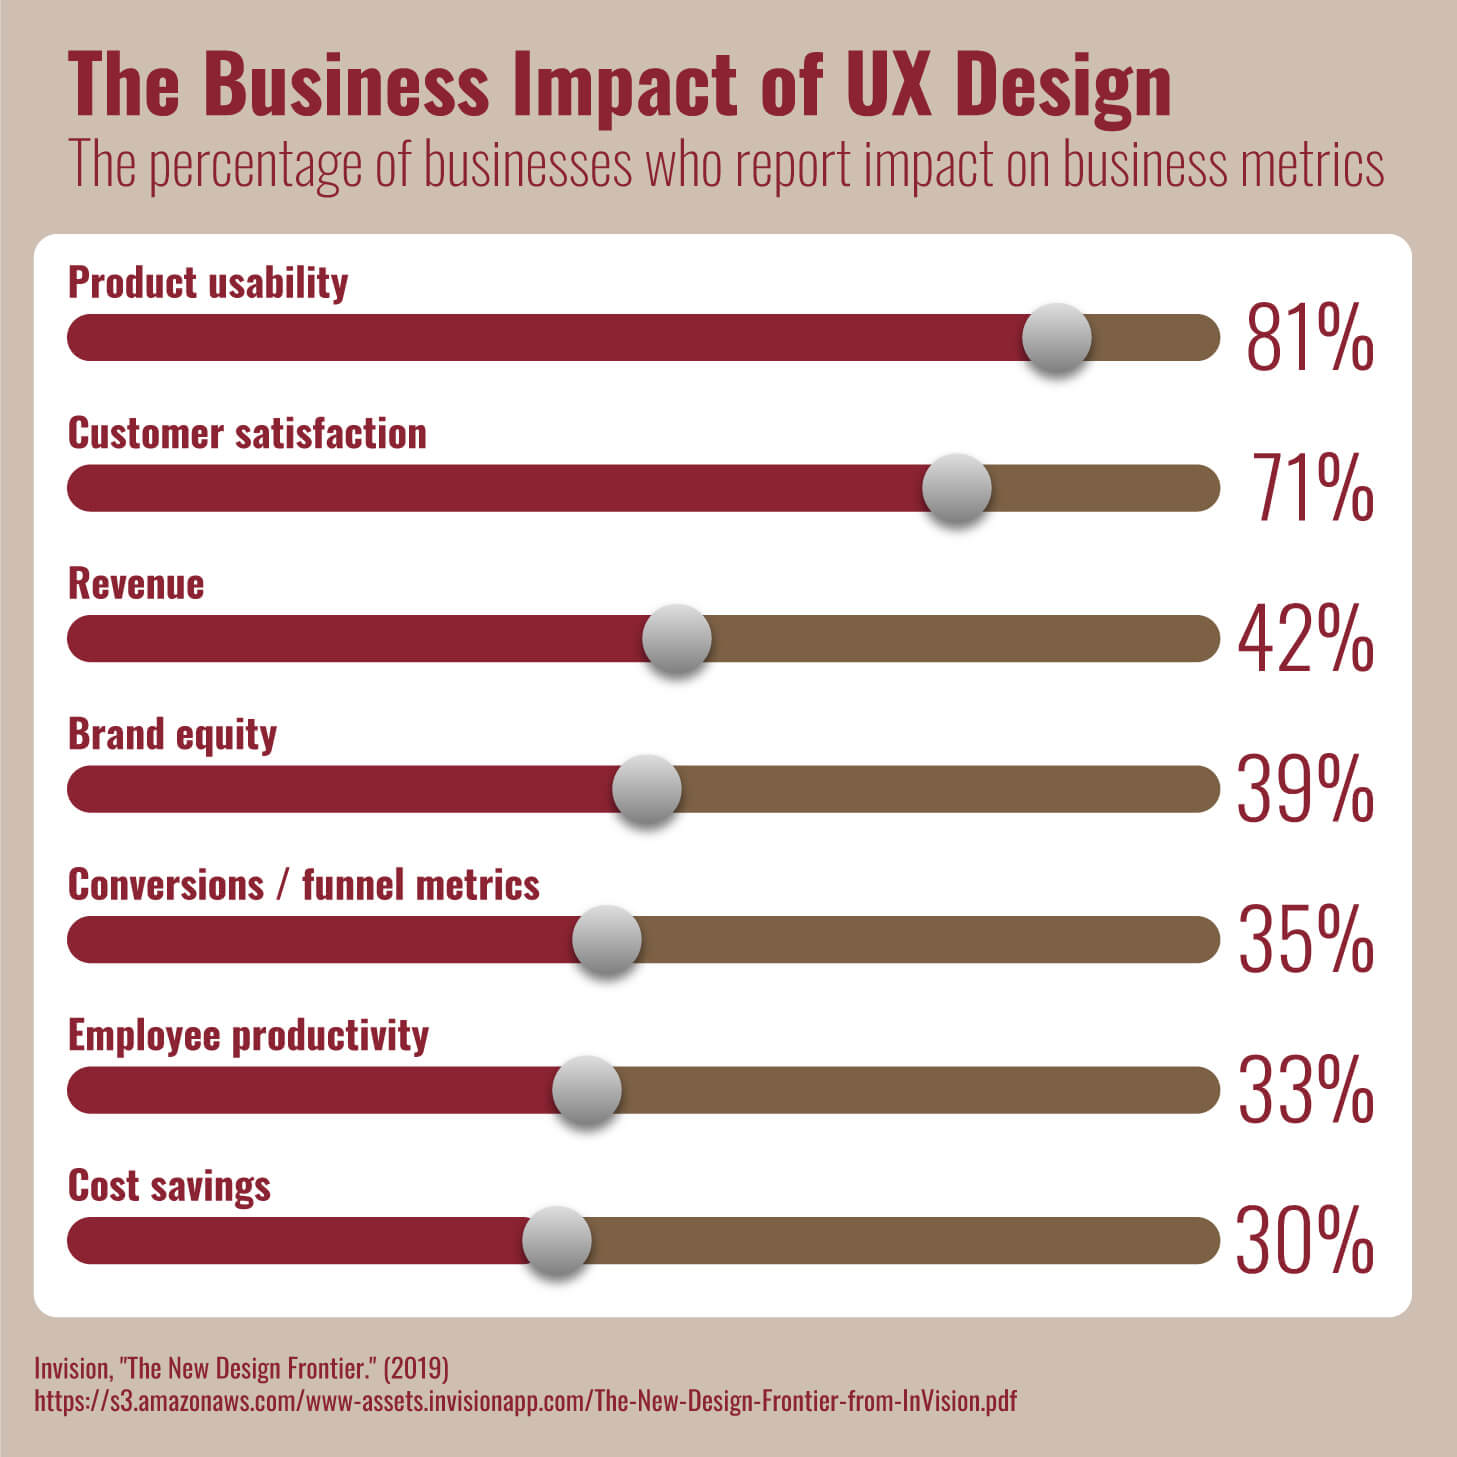 A chart showing the business impact of UX design